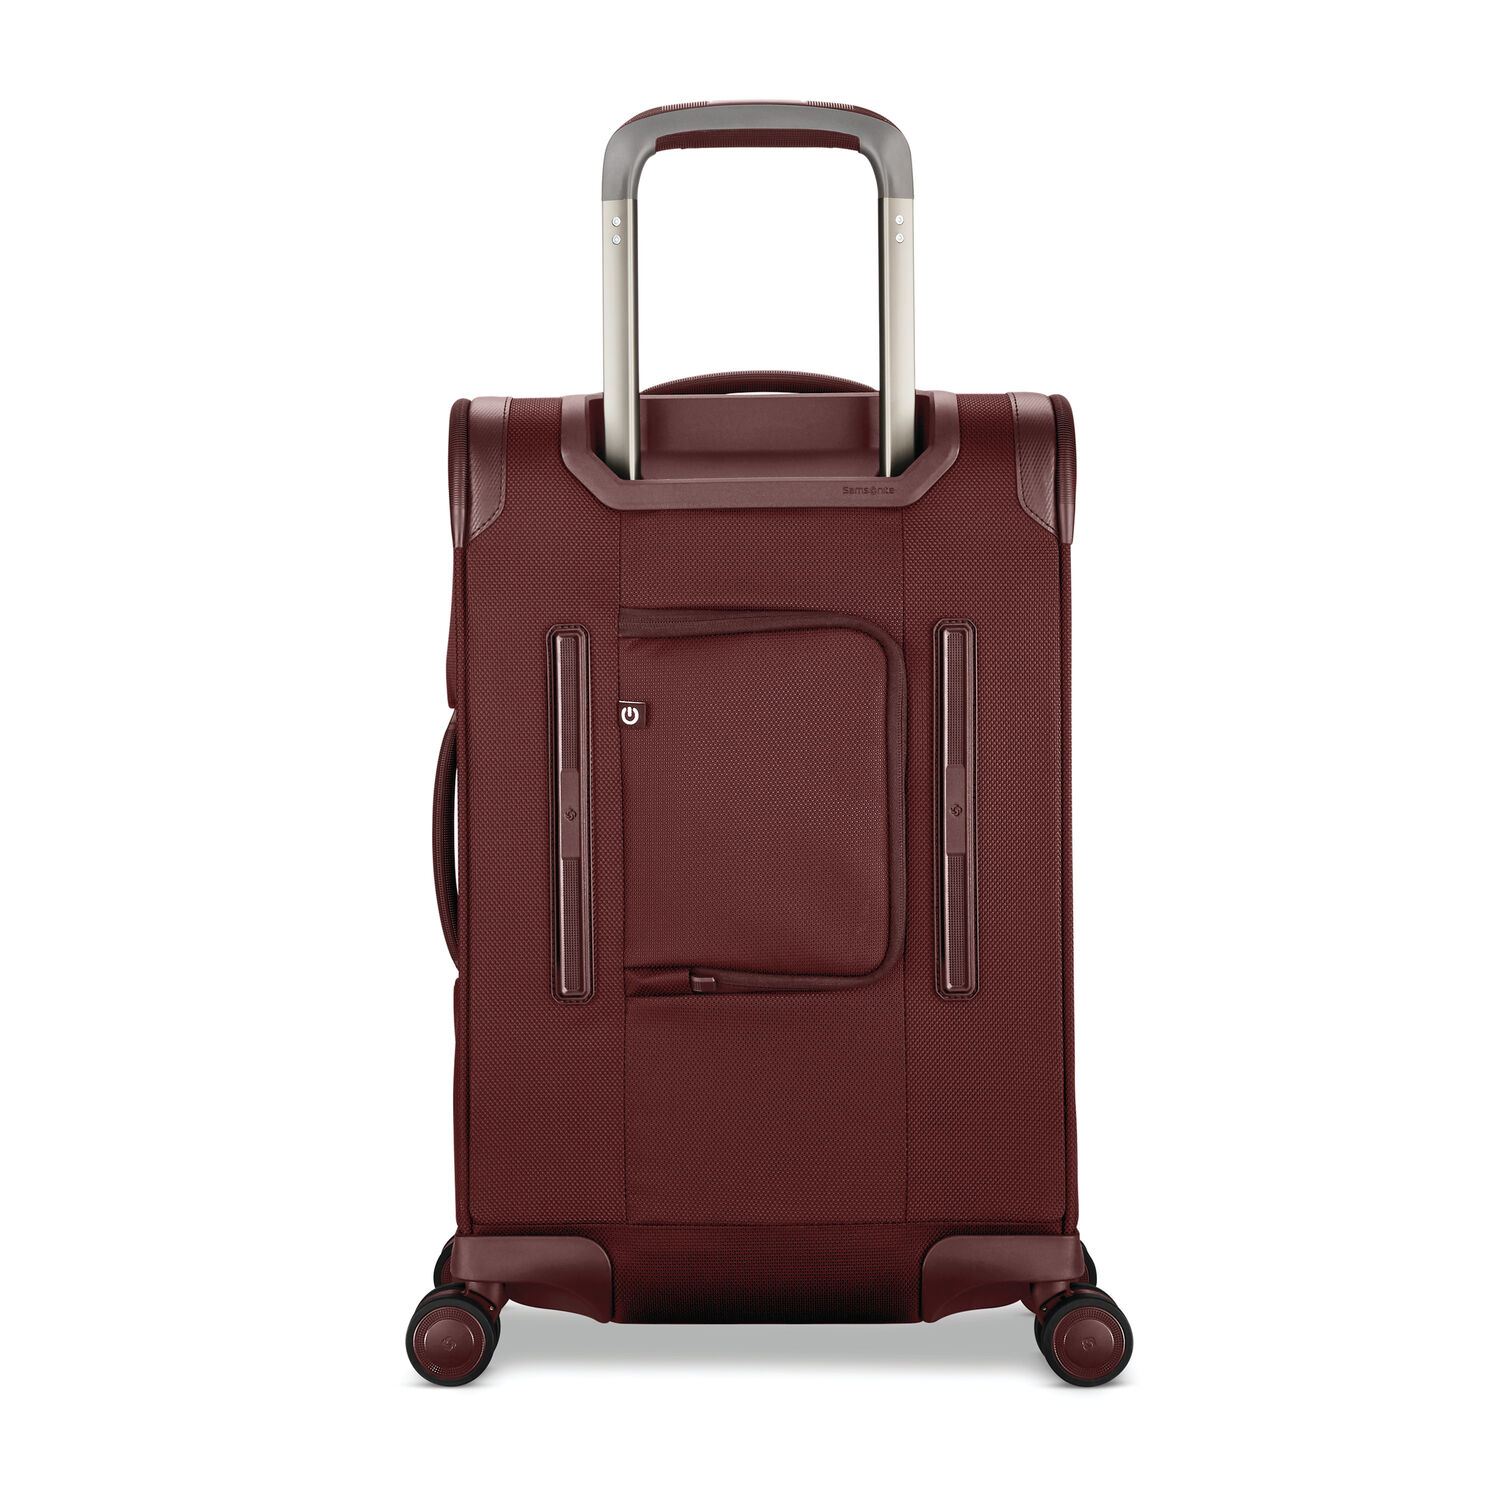 b3850ebb8 Samsonite Silhouette 16 Expandable Carry-On Spinner in the color Cabernet  Red.